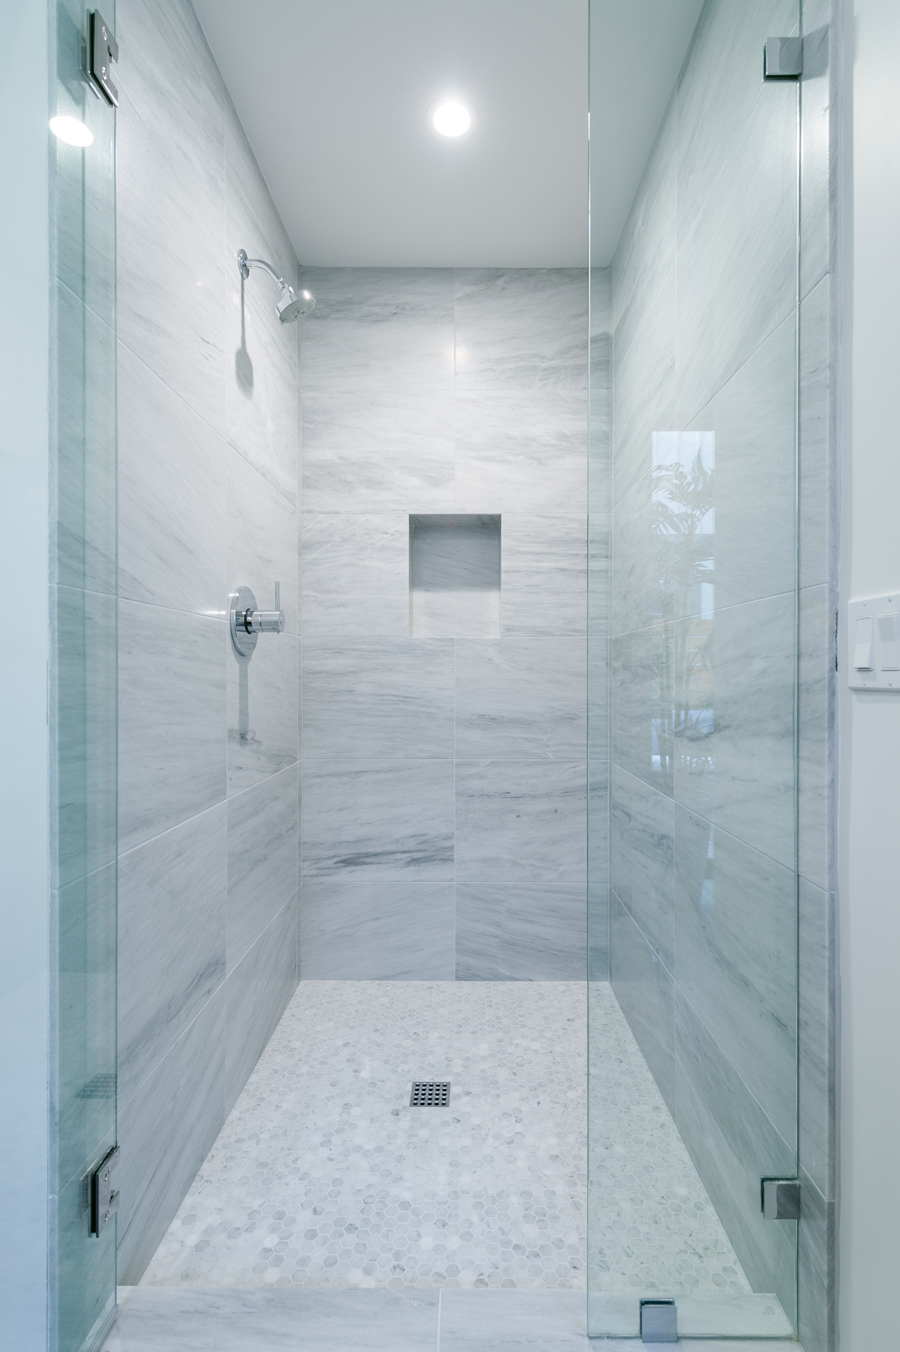 marble at shower / secondary bath